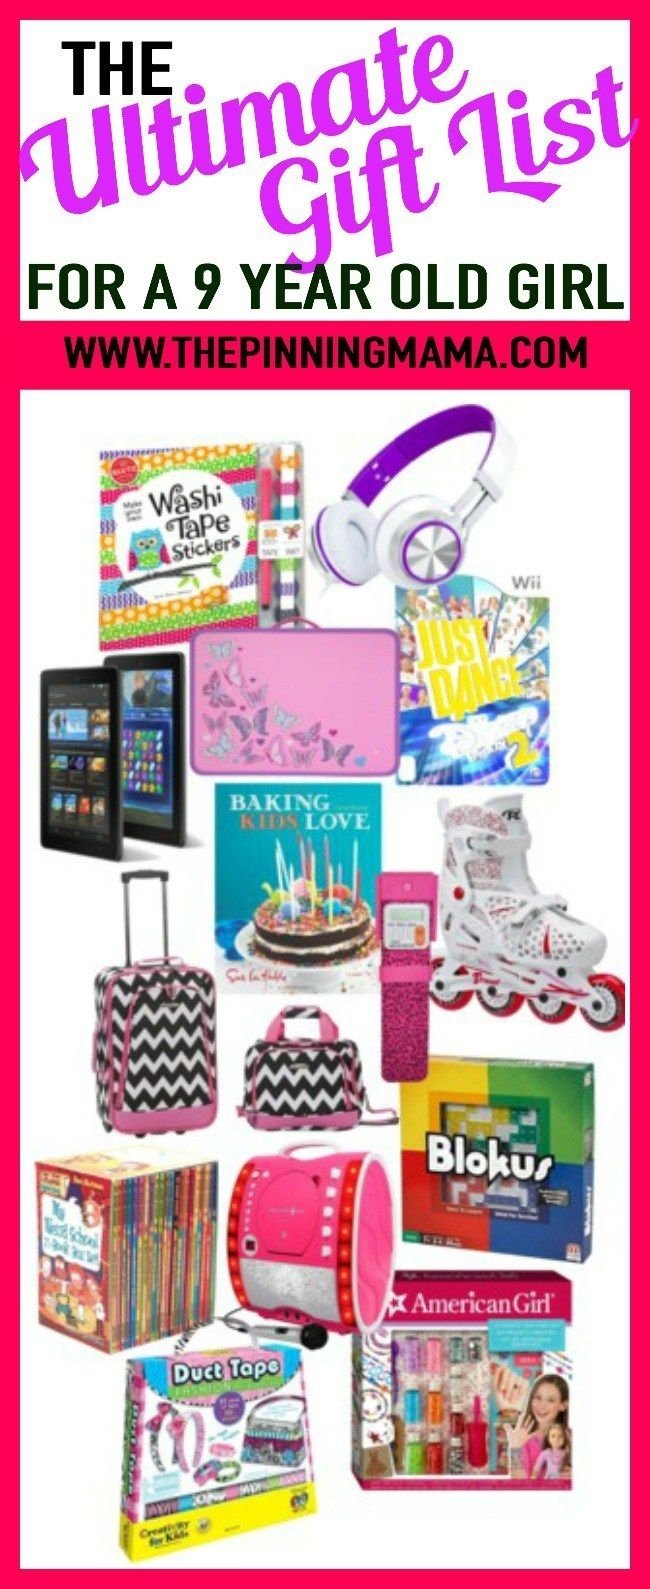 the ultimate gift list for a 9 year old girl | top toys girls age 9